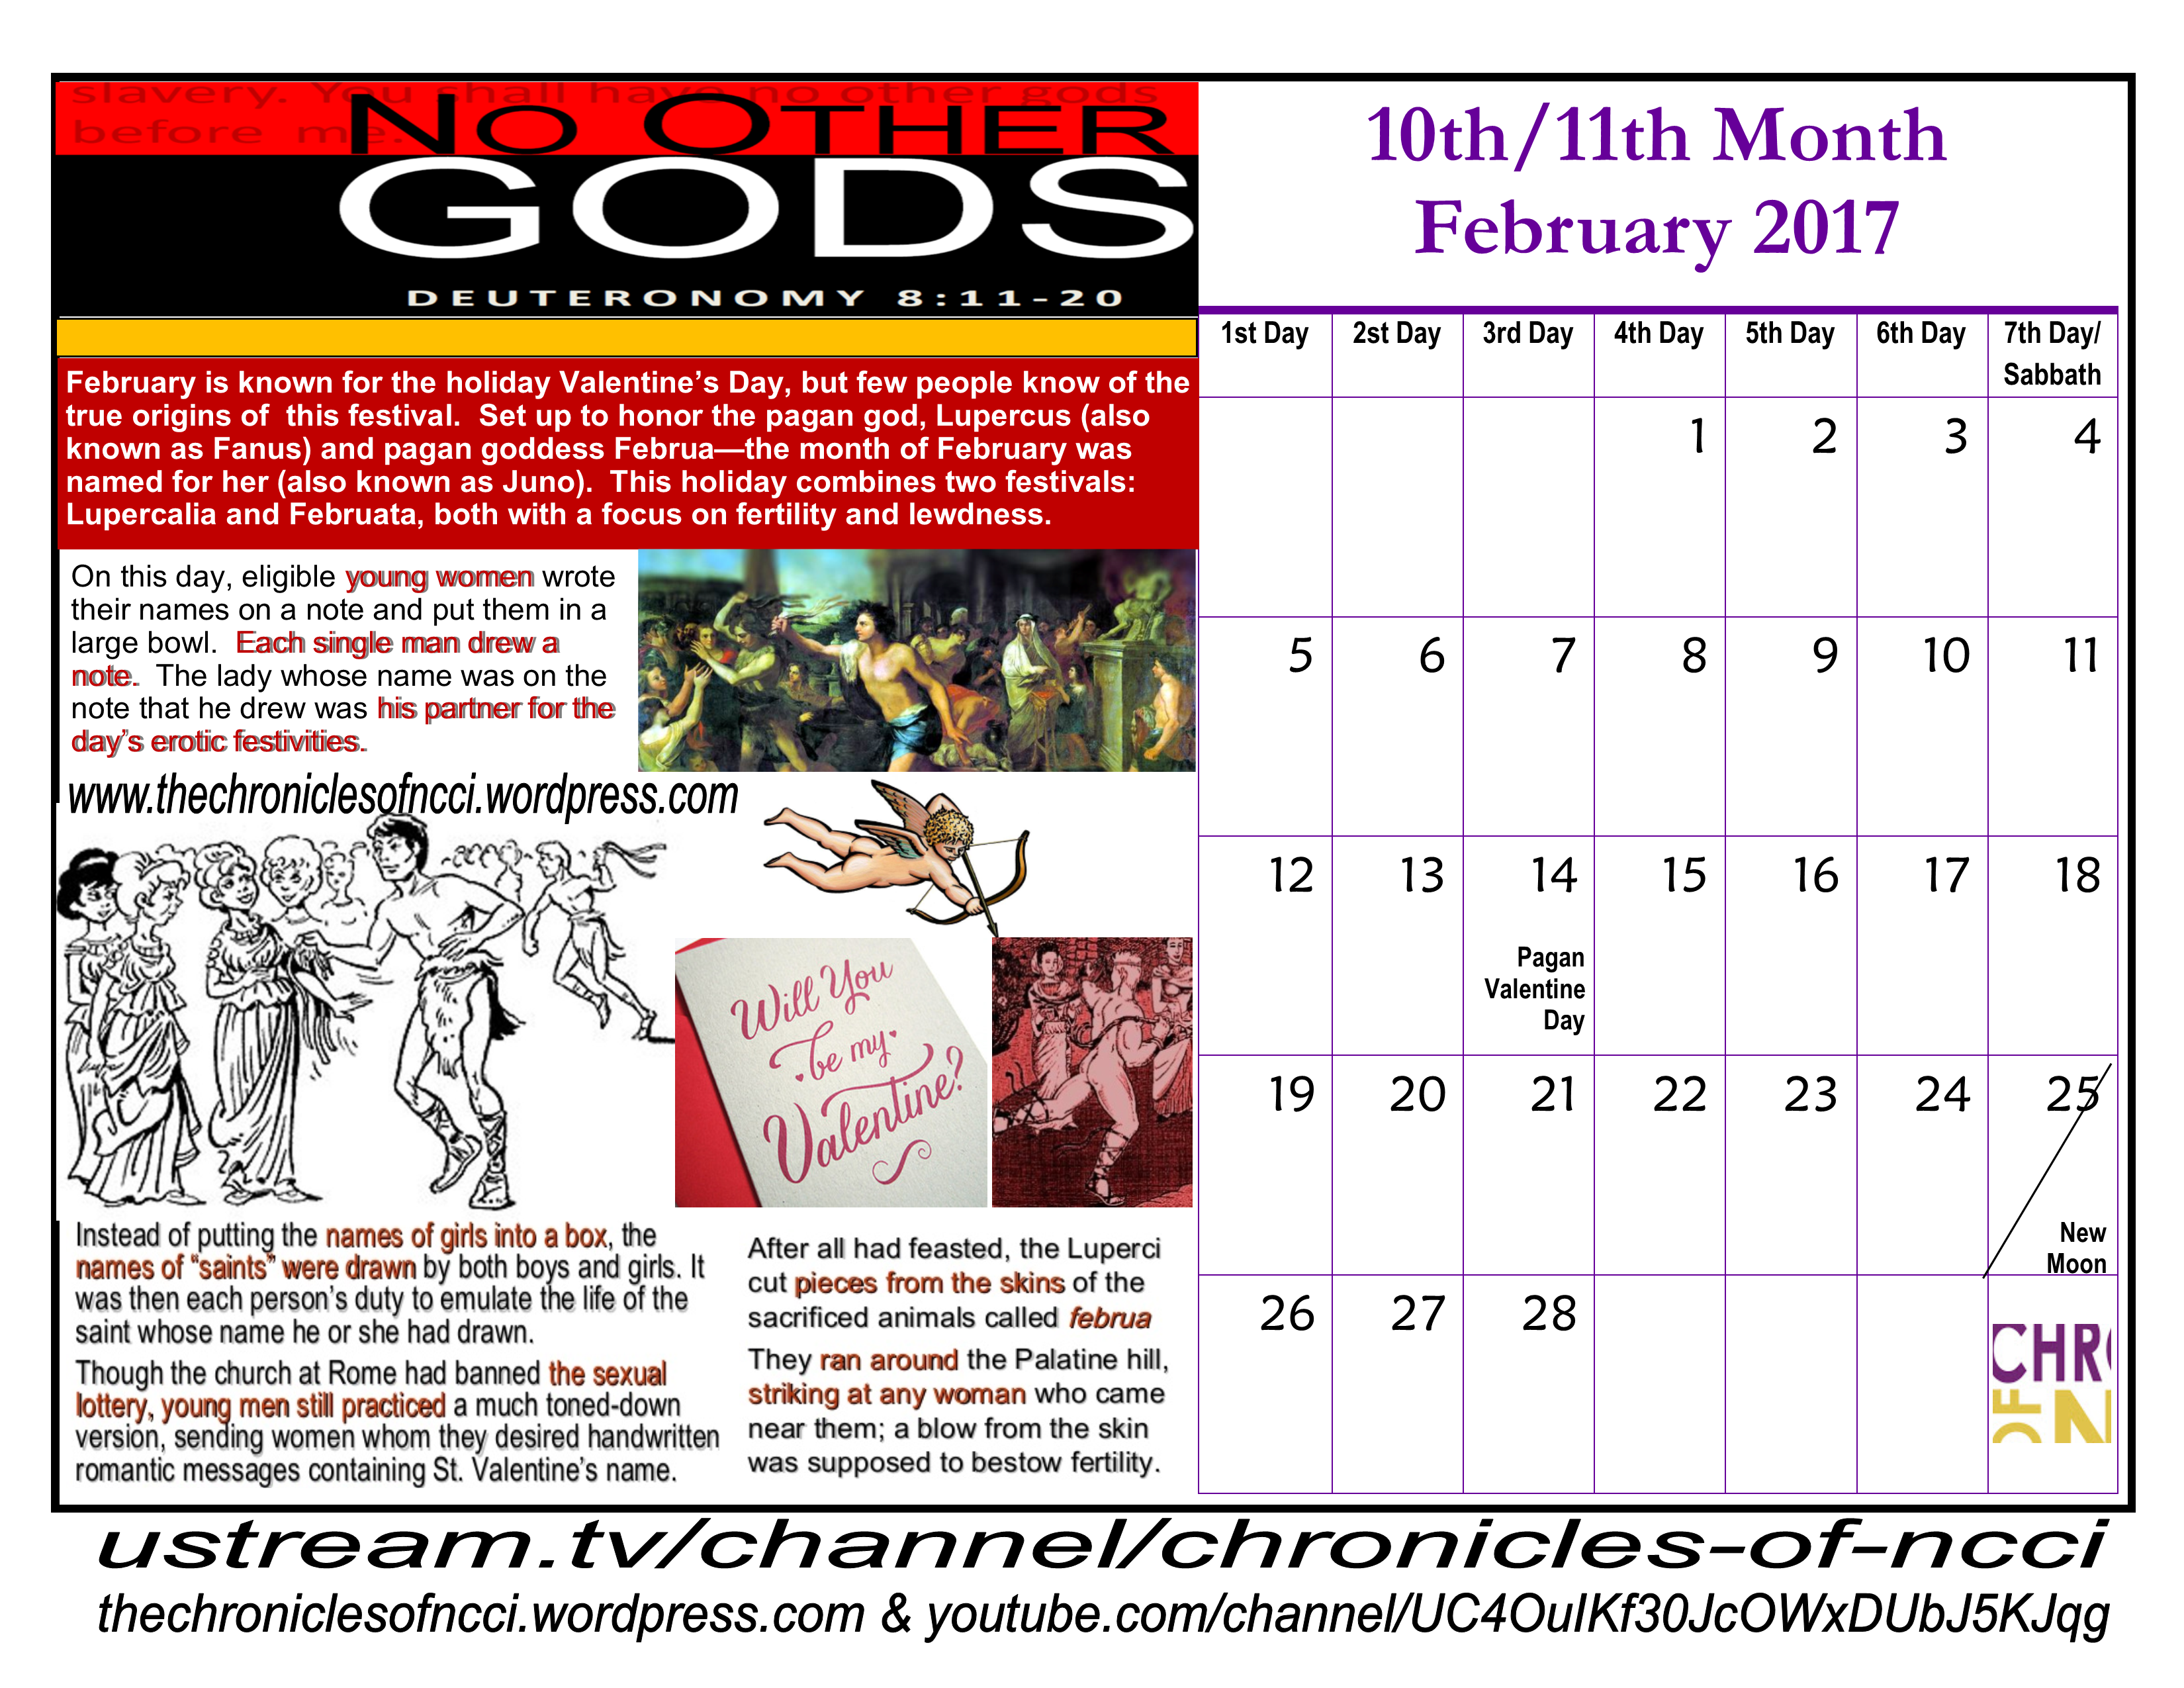 pagan holidays | The Chronicles of NCCI | Page 2